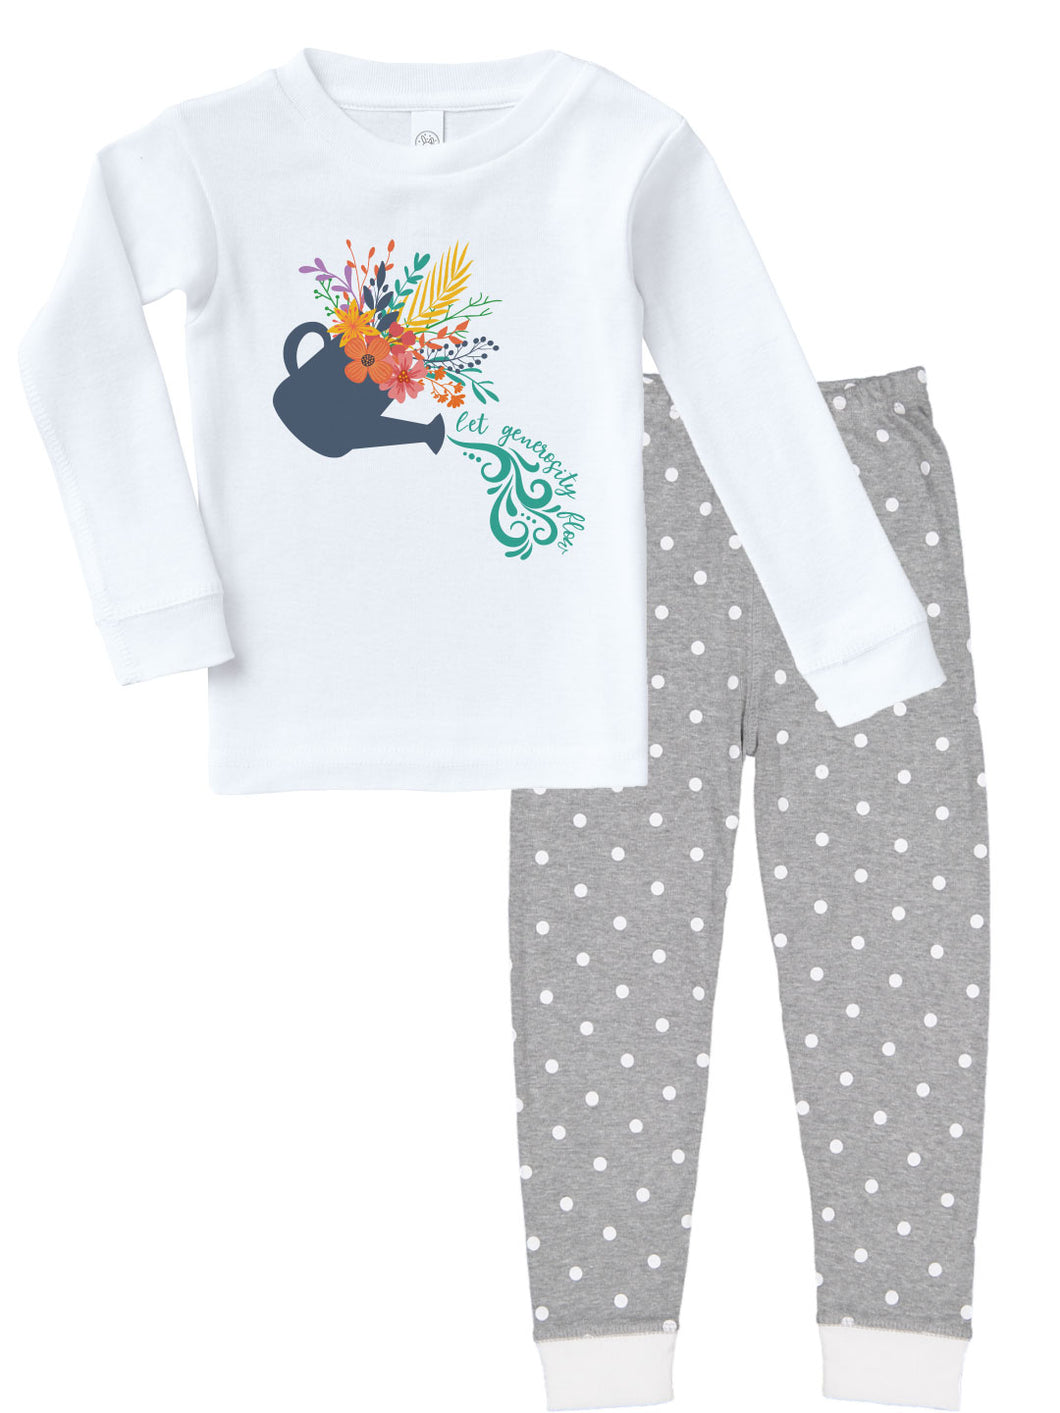 Kritter Harvest Pour Generosity Infant/ Toddler Pajamas - Kritter Haus